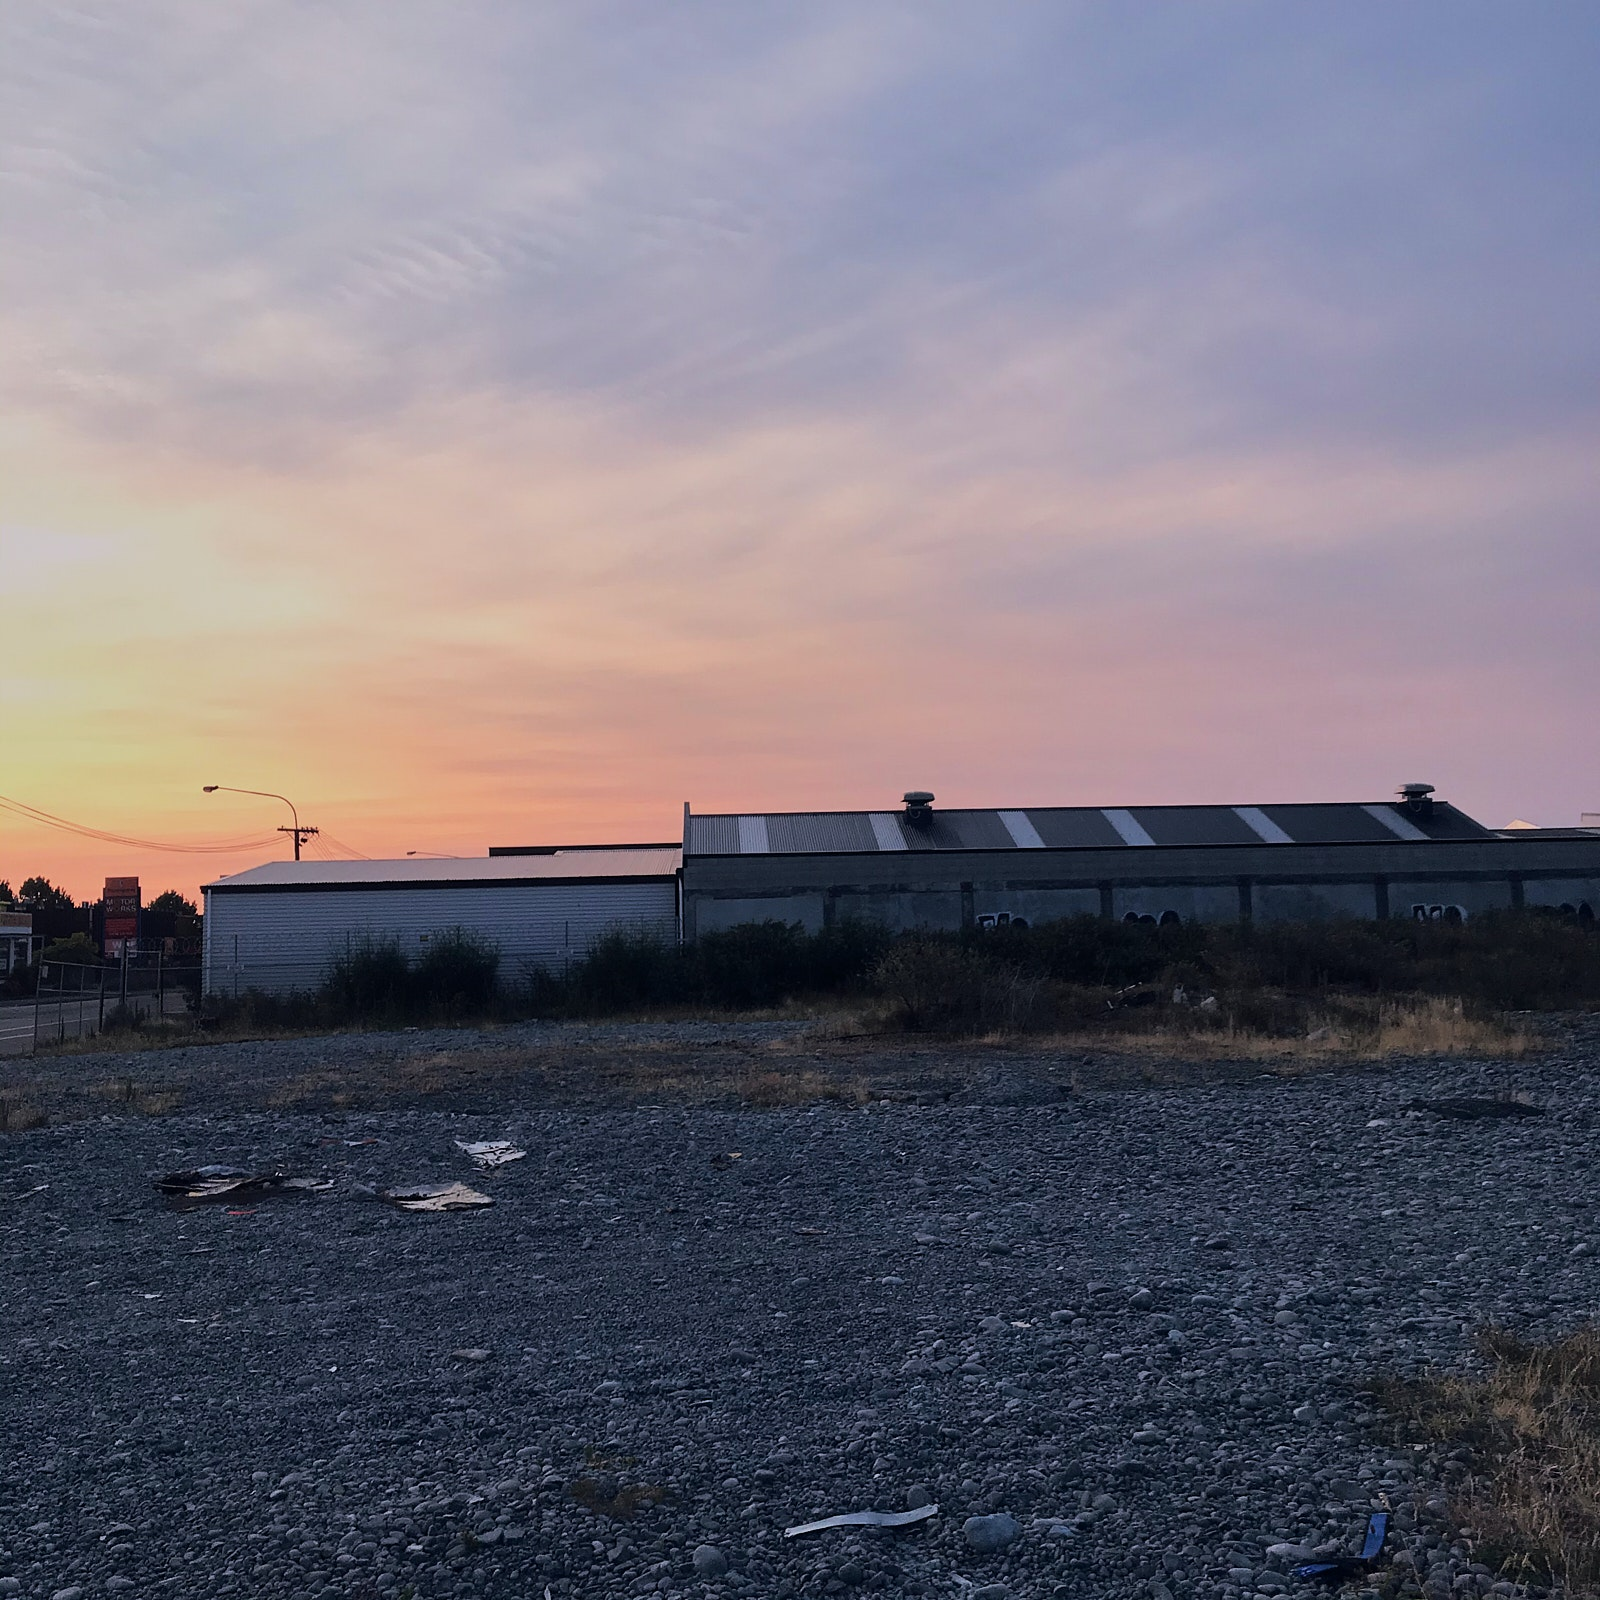 Sunset in a gravel lot.